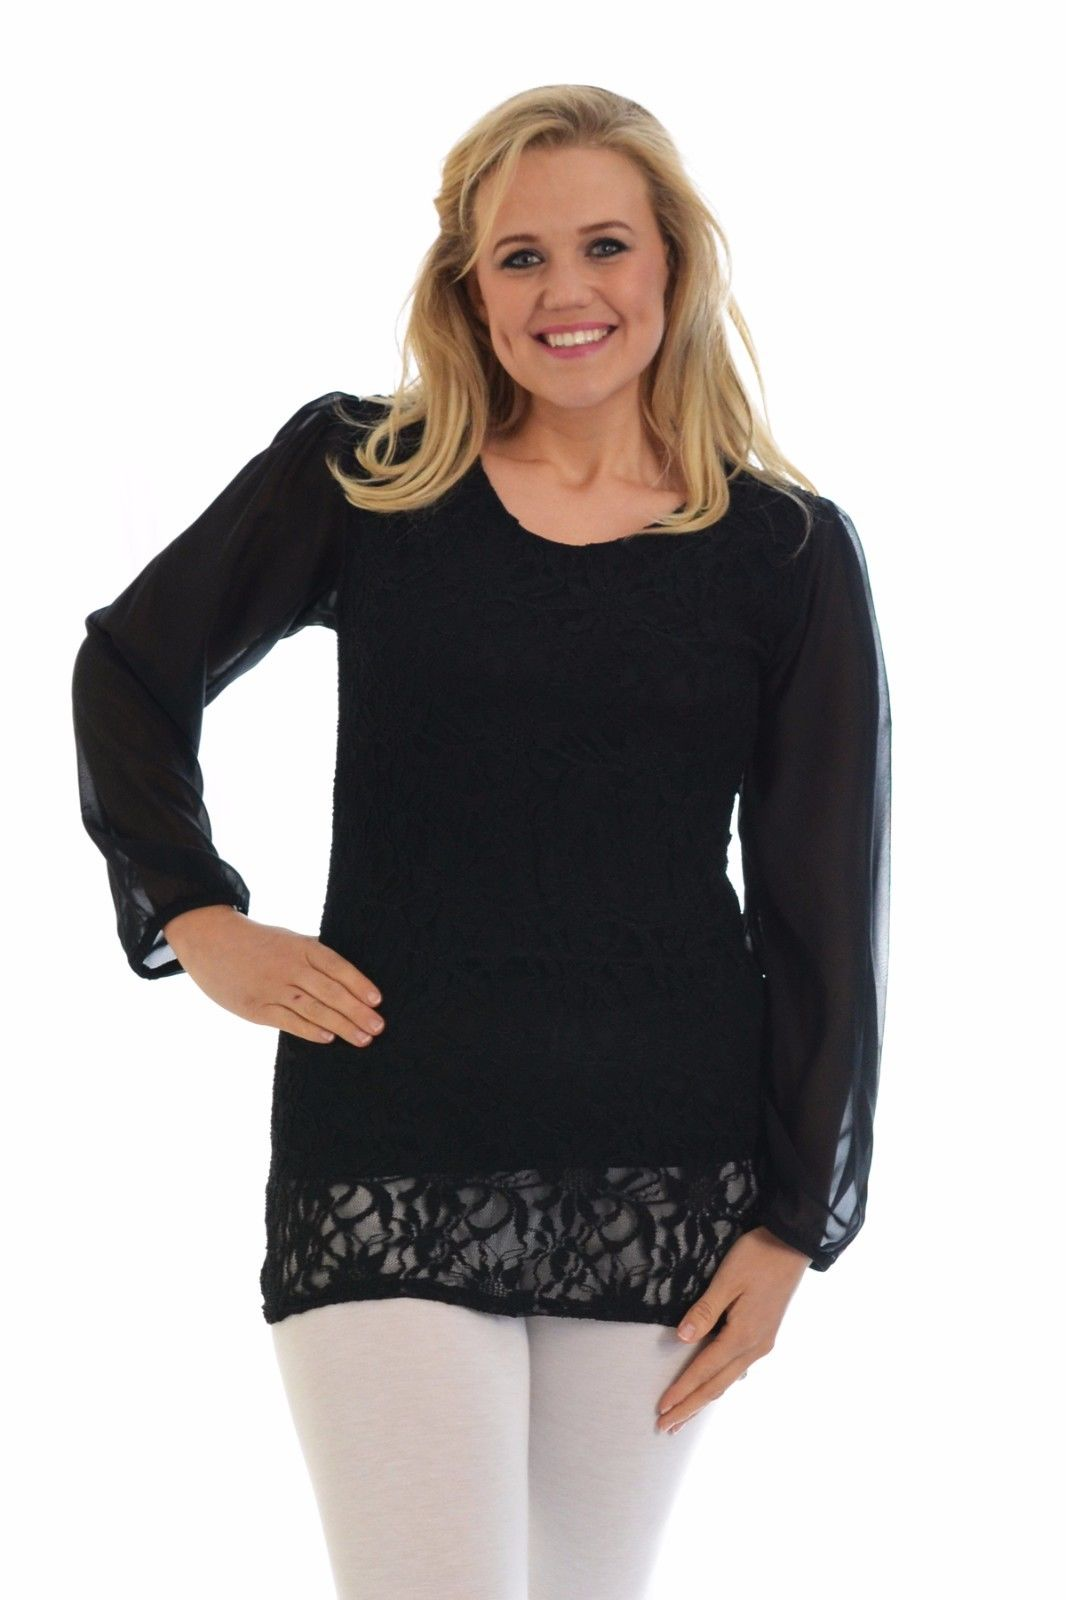 For inspiration on everything from handkerchief hem finishes and cold shoulder designs, to frill necks and jersey style wraps, check out our plus Size T Shirts, Camisoles, and Blouses options. Whatever your plans, we'll help you to create your ideal fashionable ensembles.